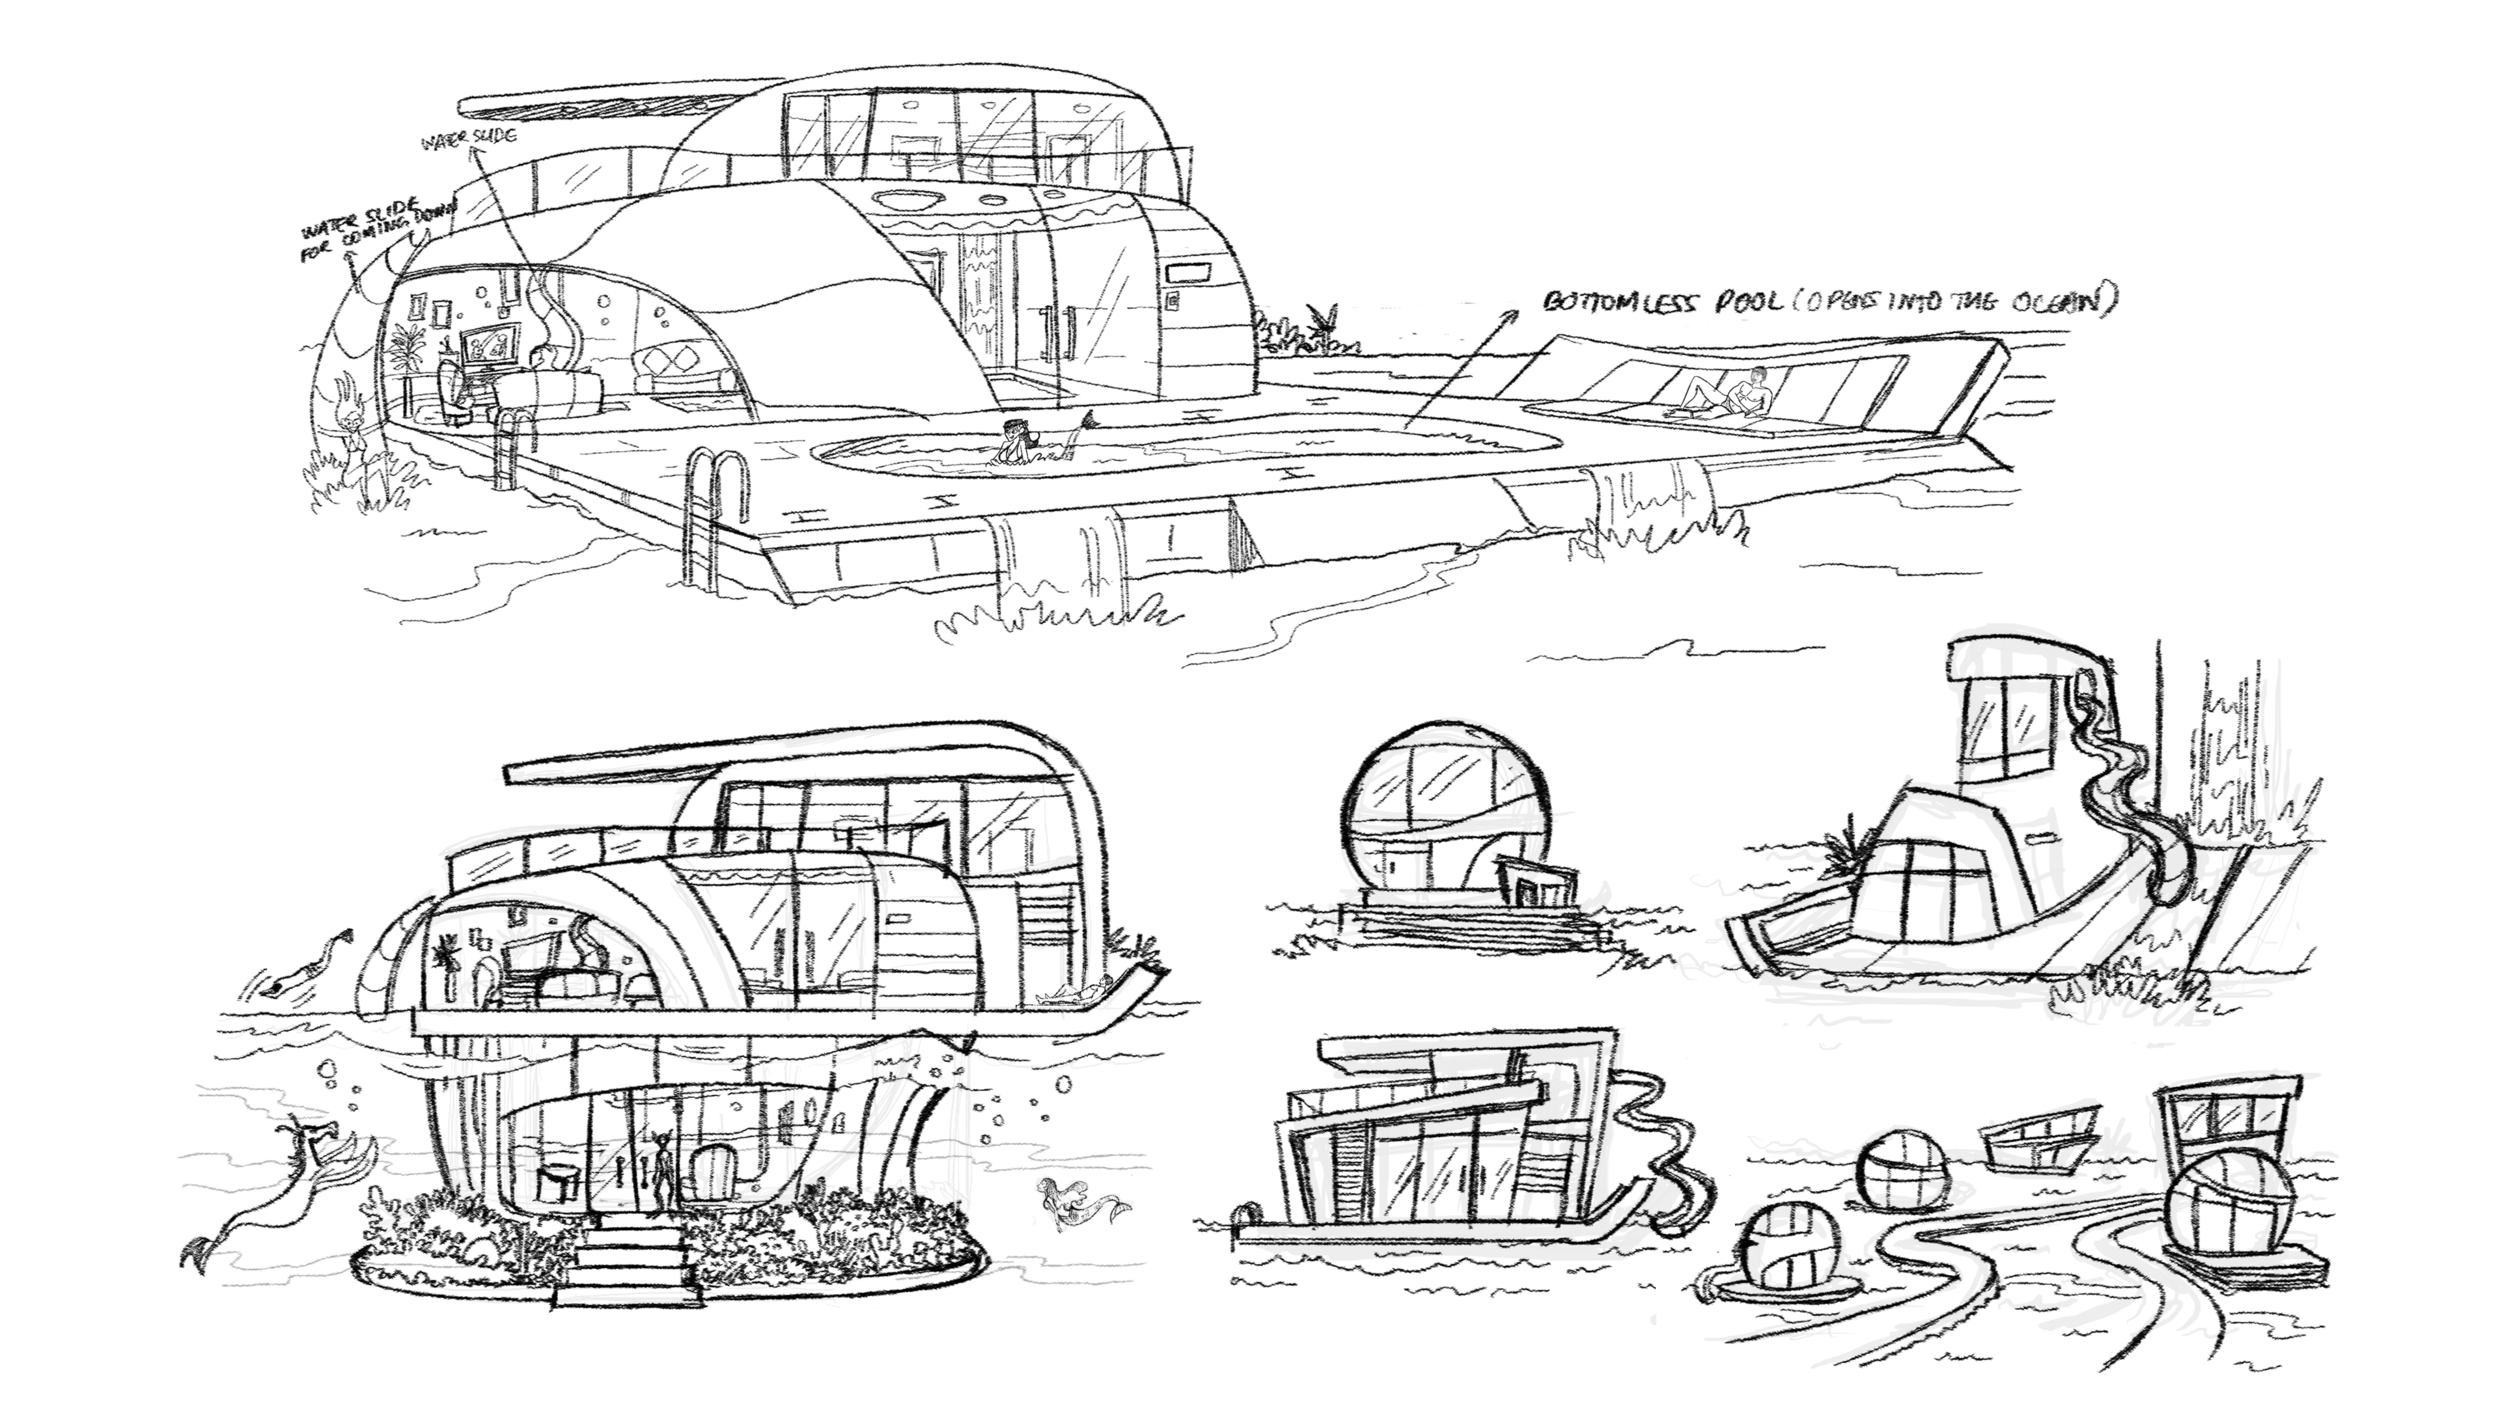 Houses for water creatures: Explorations